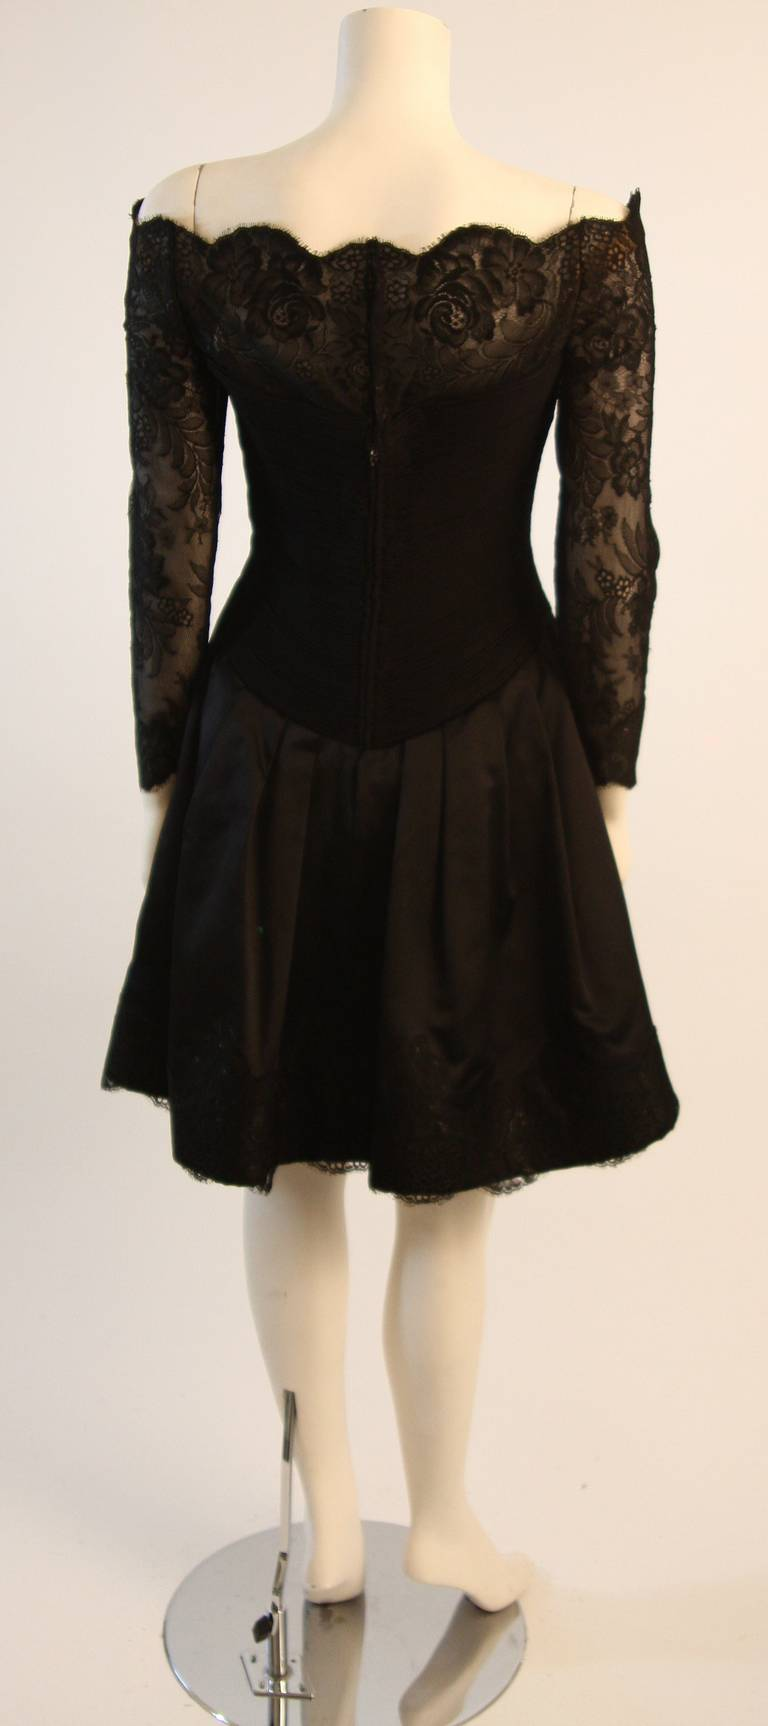 Vera Wang Black Off the Shoulder Silk Cocktail Dress with 3/4 Lace Sleeves 7